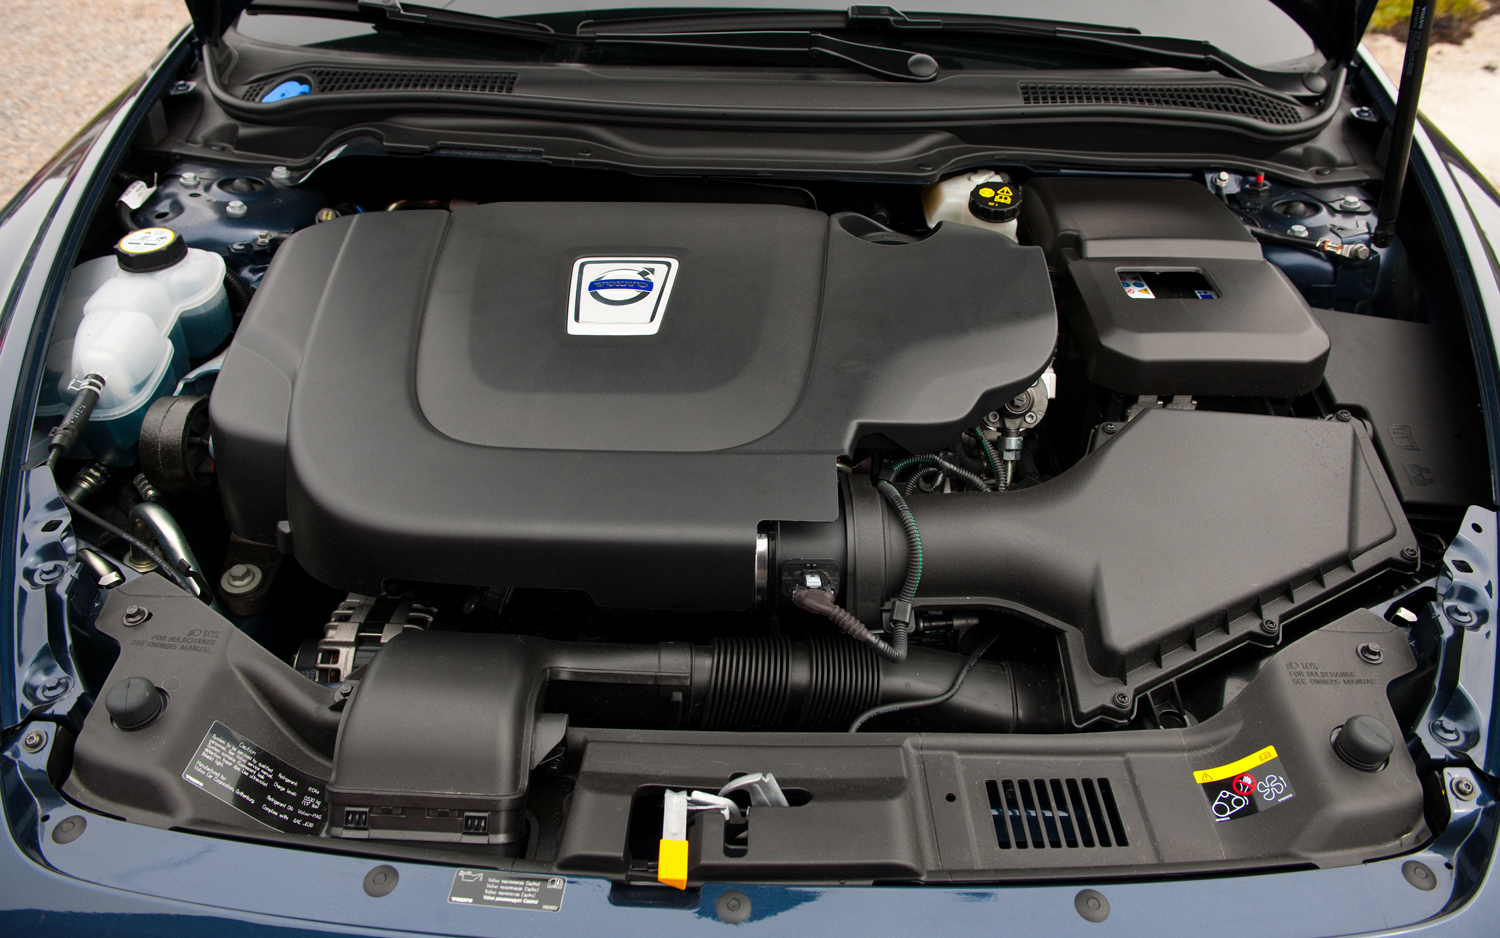 Volvo C70 engine #3